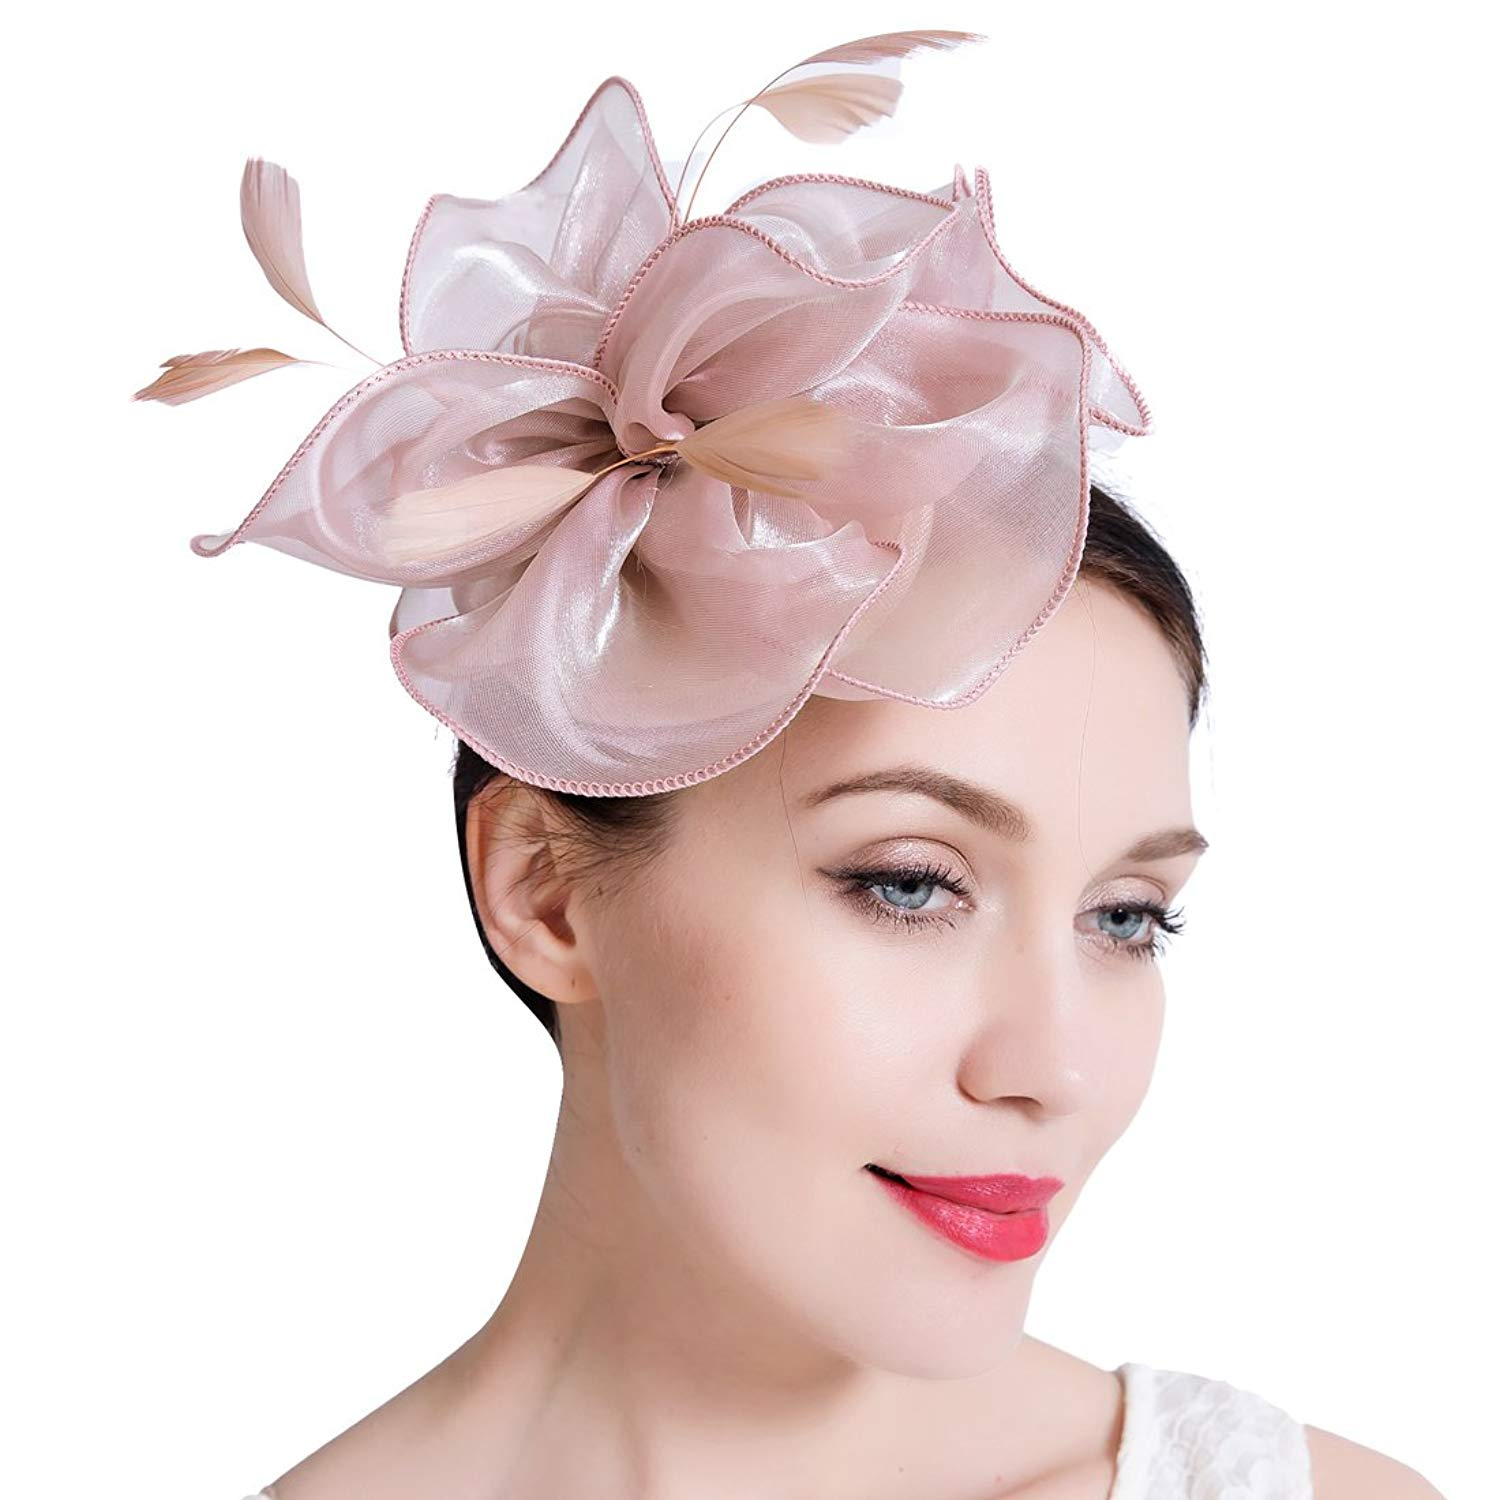 e4a025aa564eb JaosWish Sinamay Vintage Women Fascinators Derby Hat Feather With Headband  Cocktail Headpiece For Tea Party Wedding